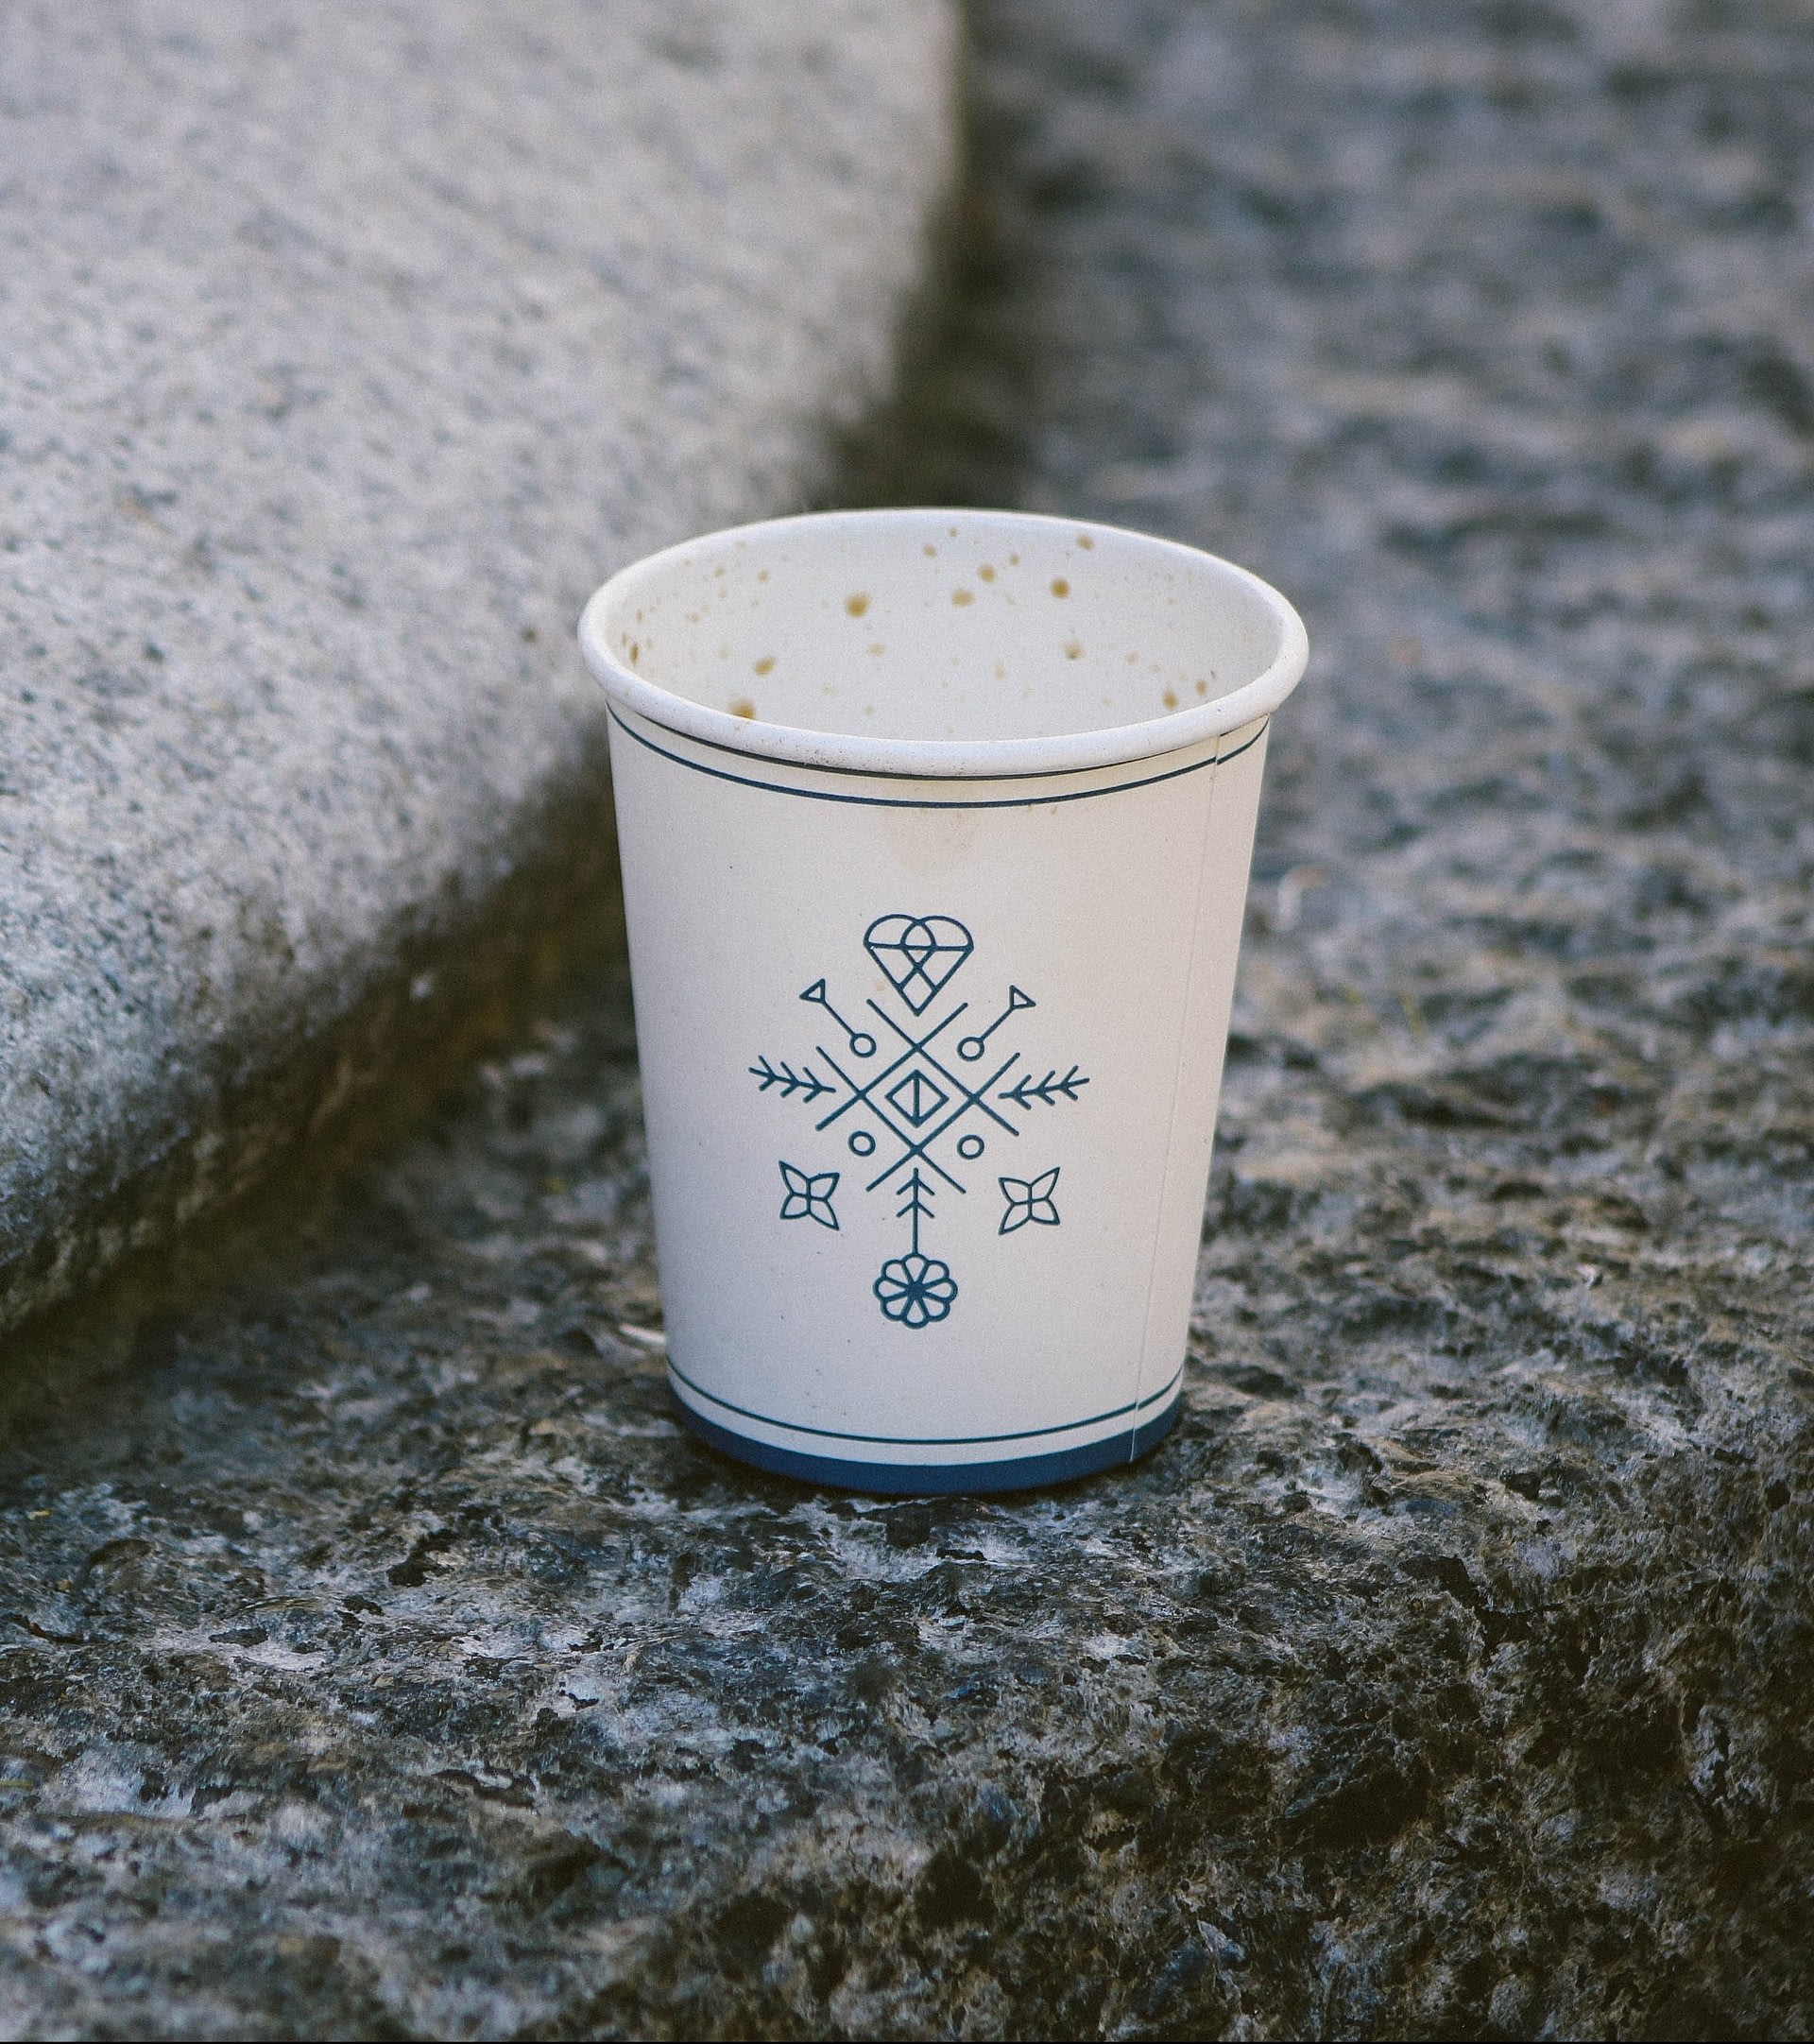 A small paper coffee cup that secretly contains plastic